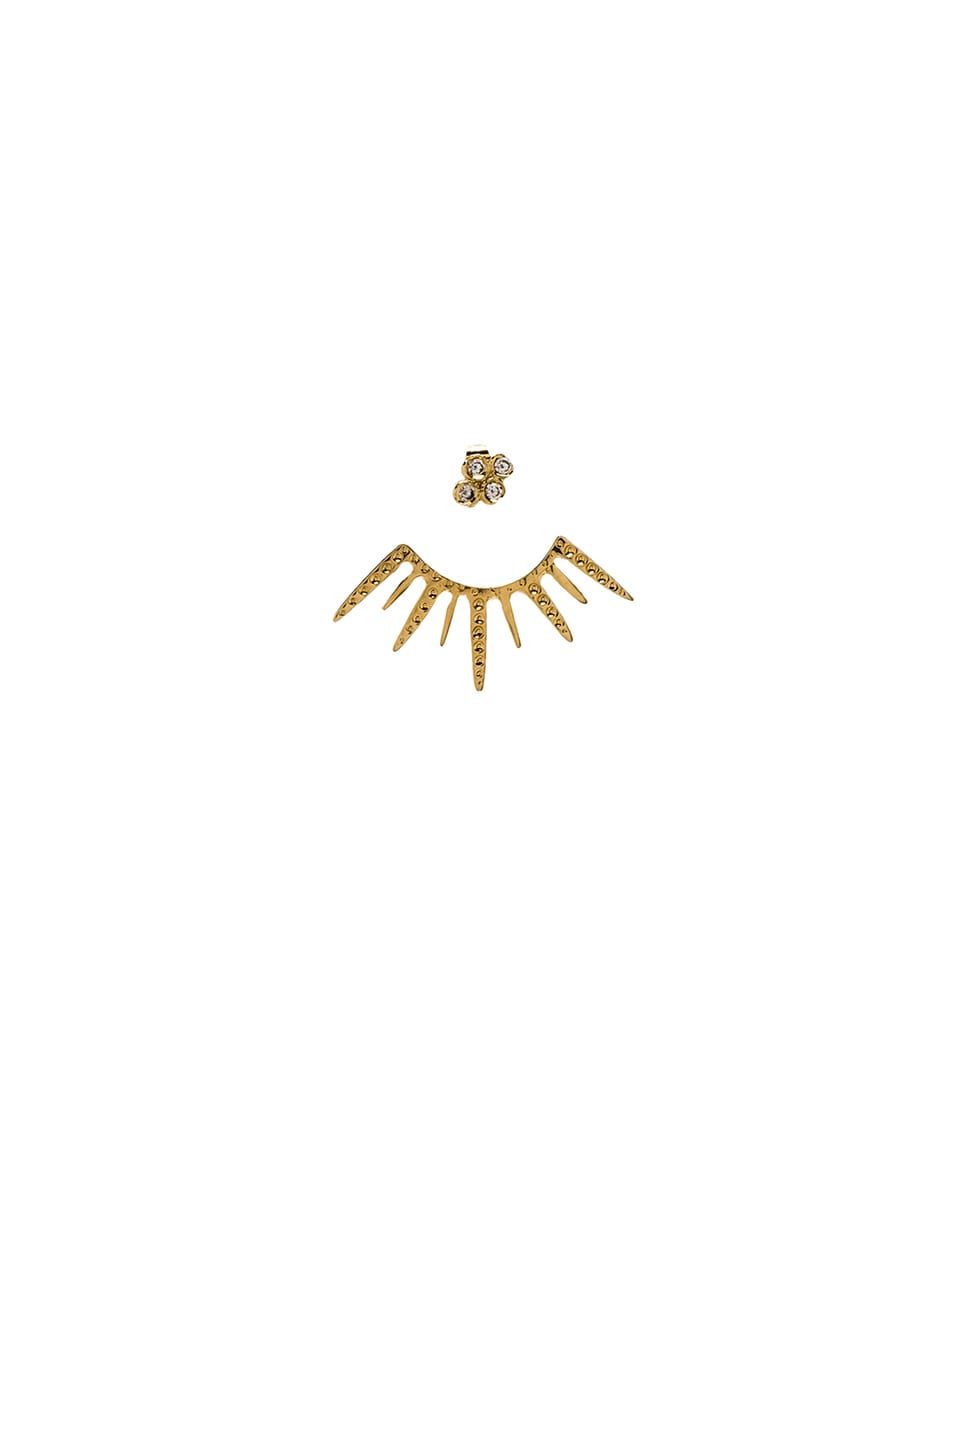 Jacquie Aiche Starburst Ear Jacket in Gold